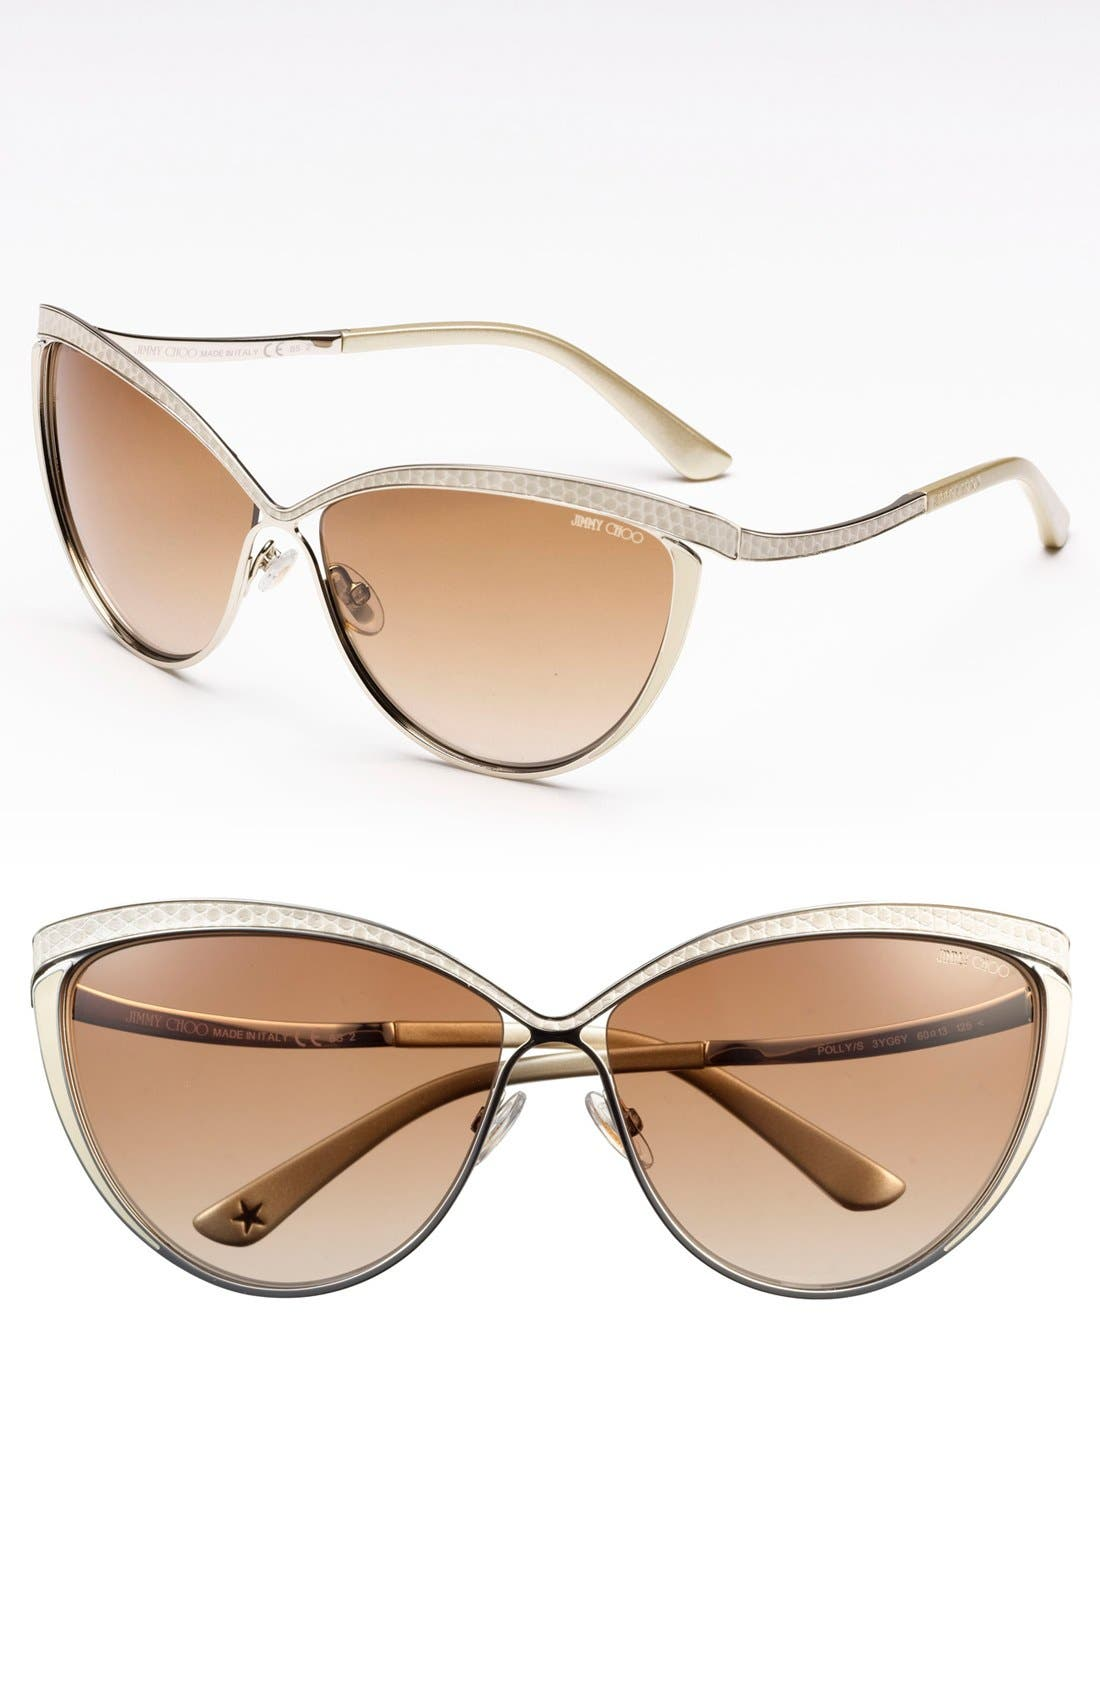 Main Image - Jimmy Choo 60mm Retro Sunglasses